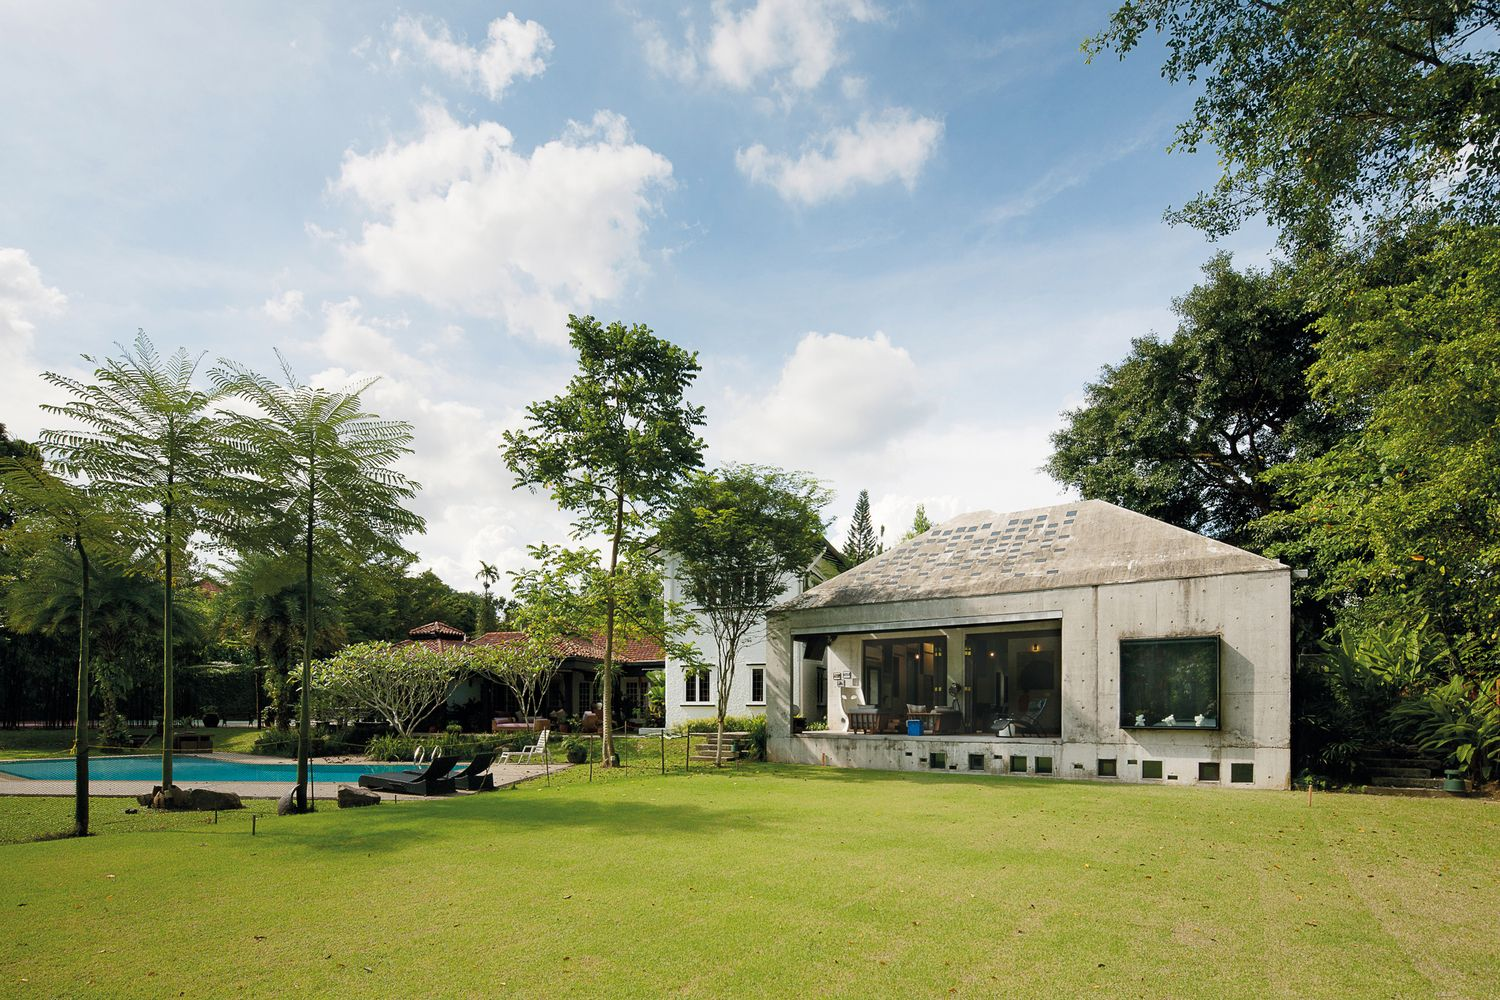 Gallery - 3 Leedon Park / ipli architects - 2